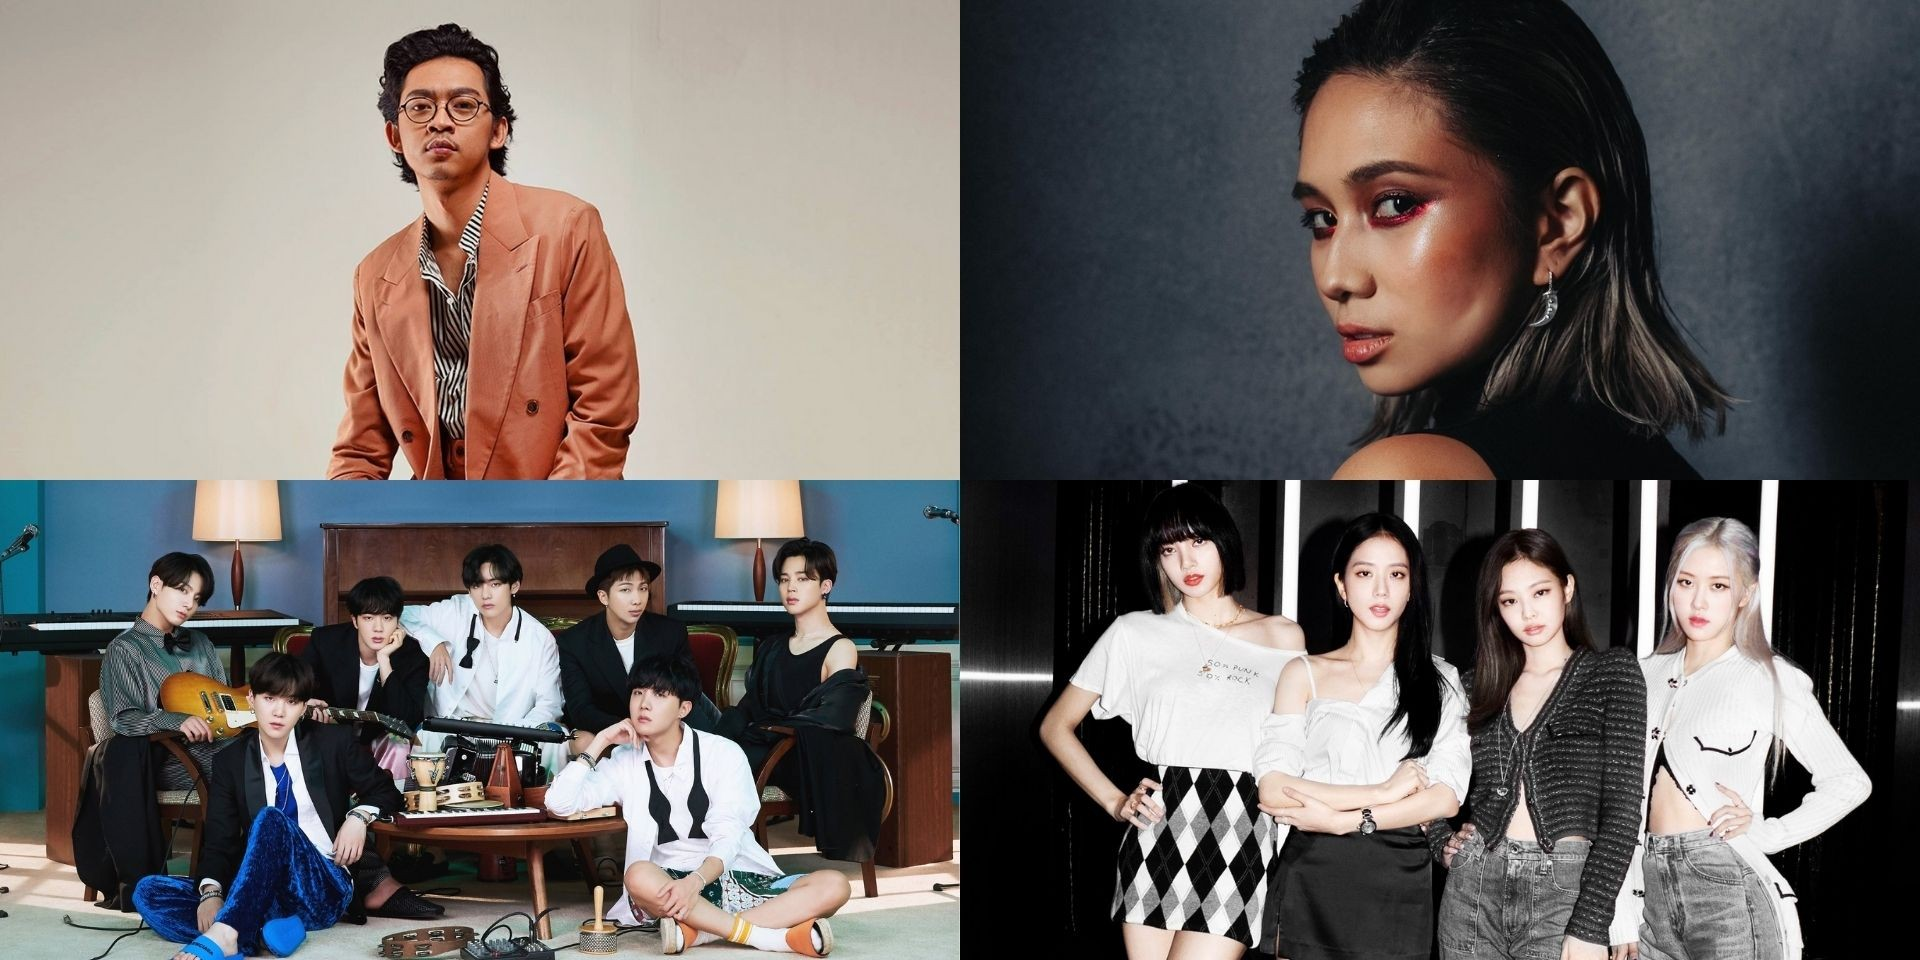 Pamungkas, NIKI, BTS, BLACKPINK, and more top Spotify Indonesia's list of most-streamed artists for 2020